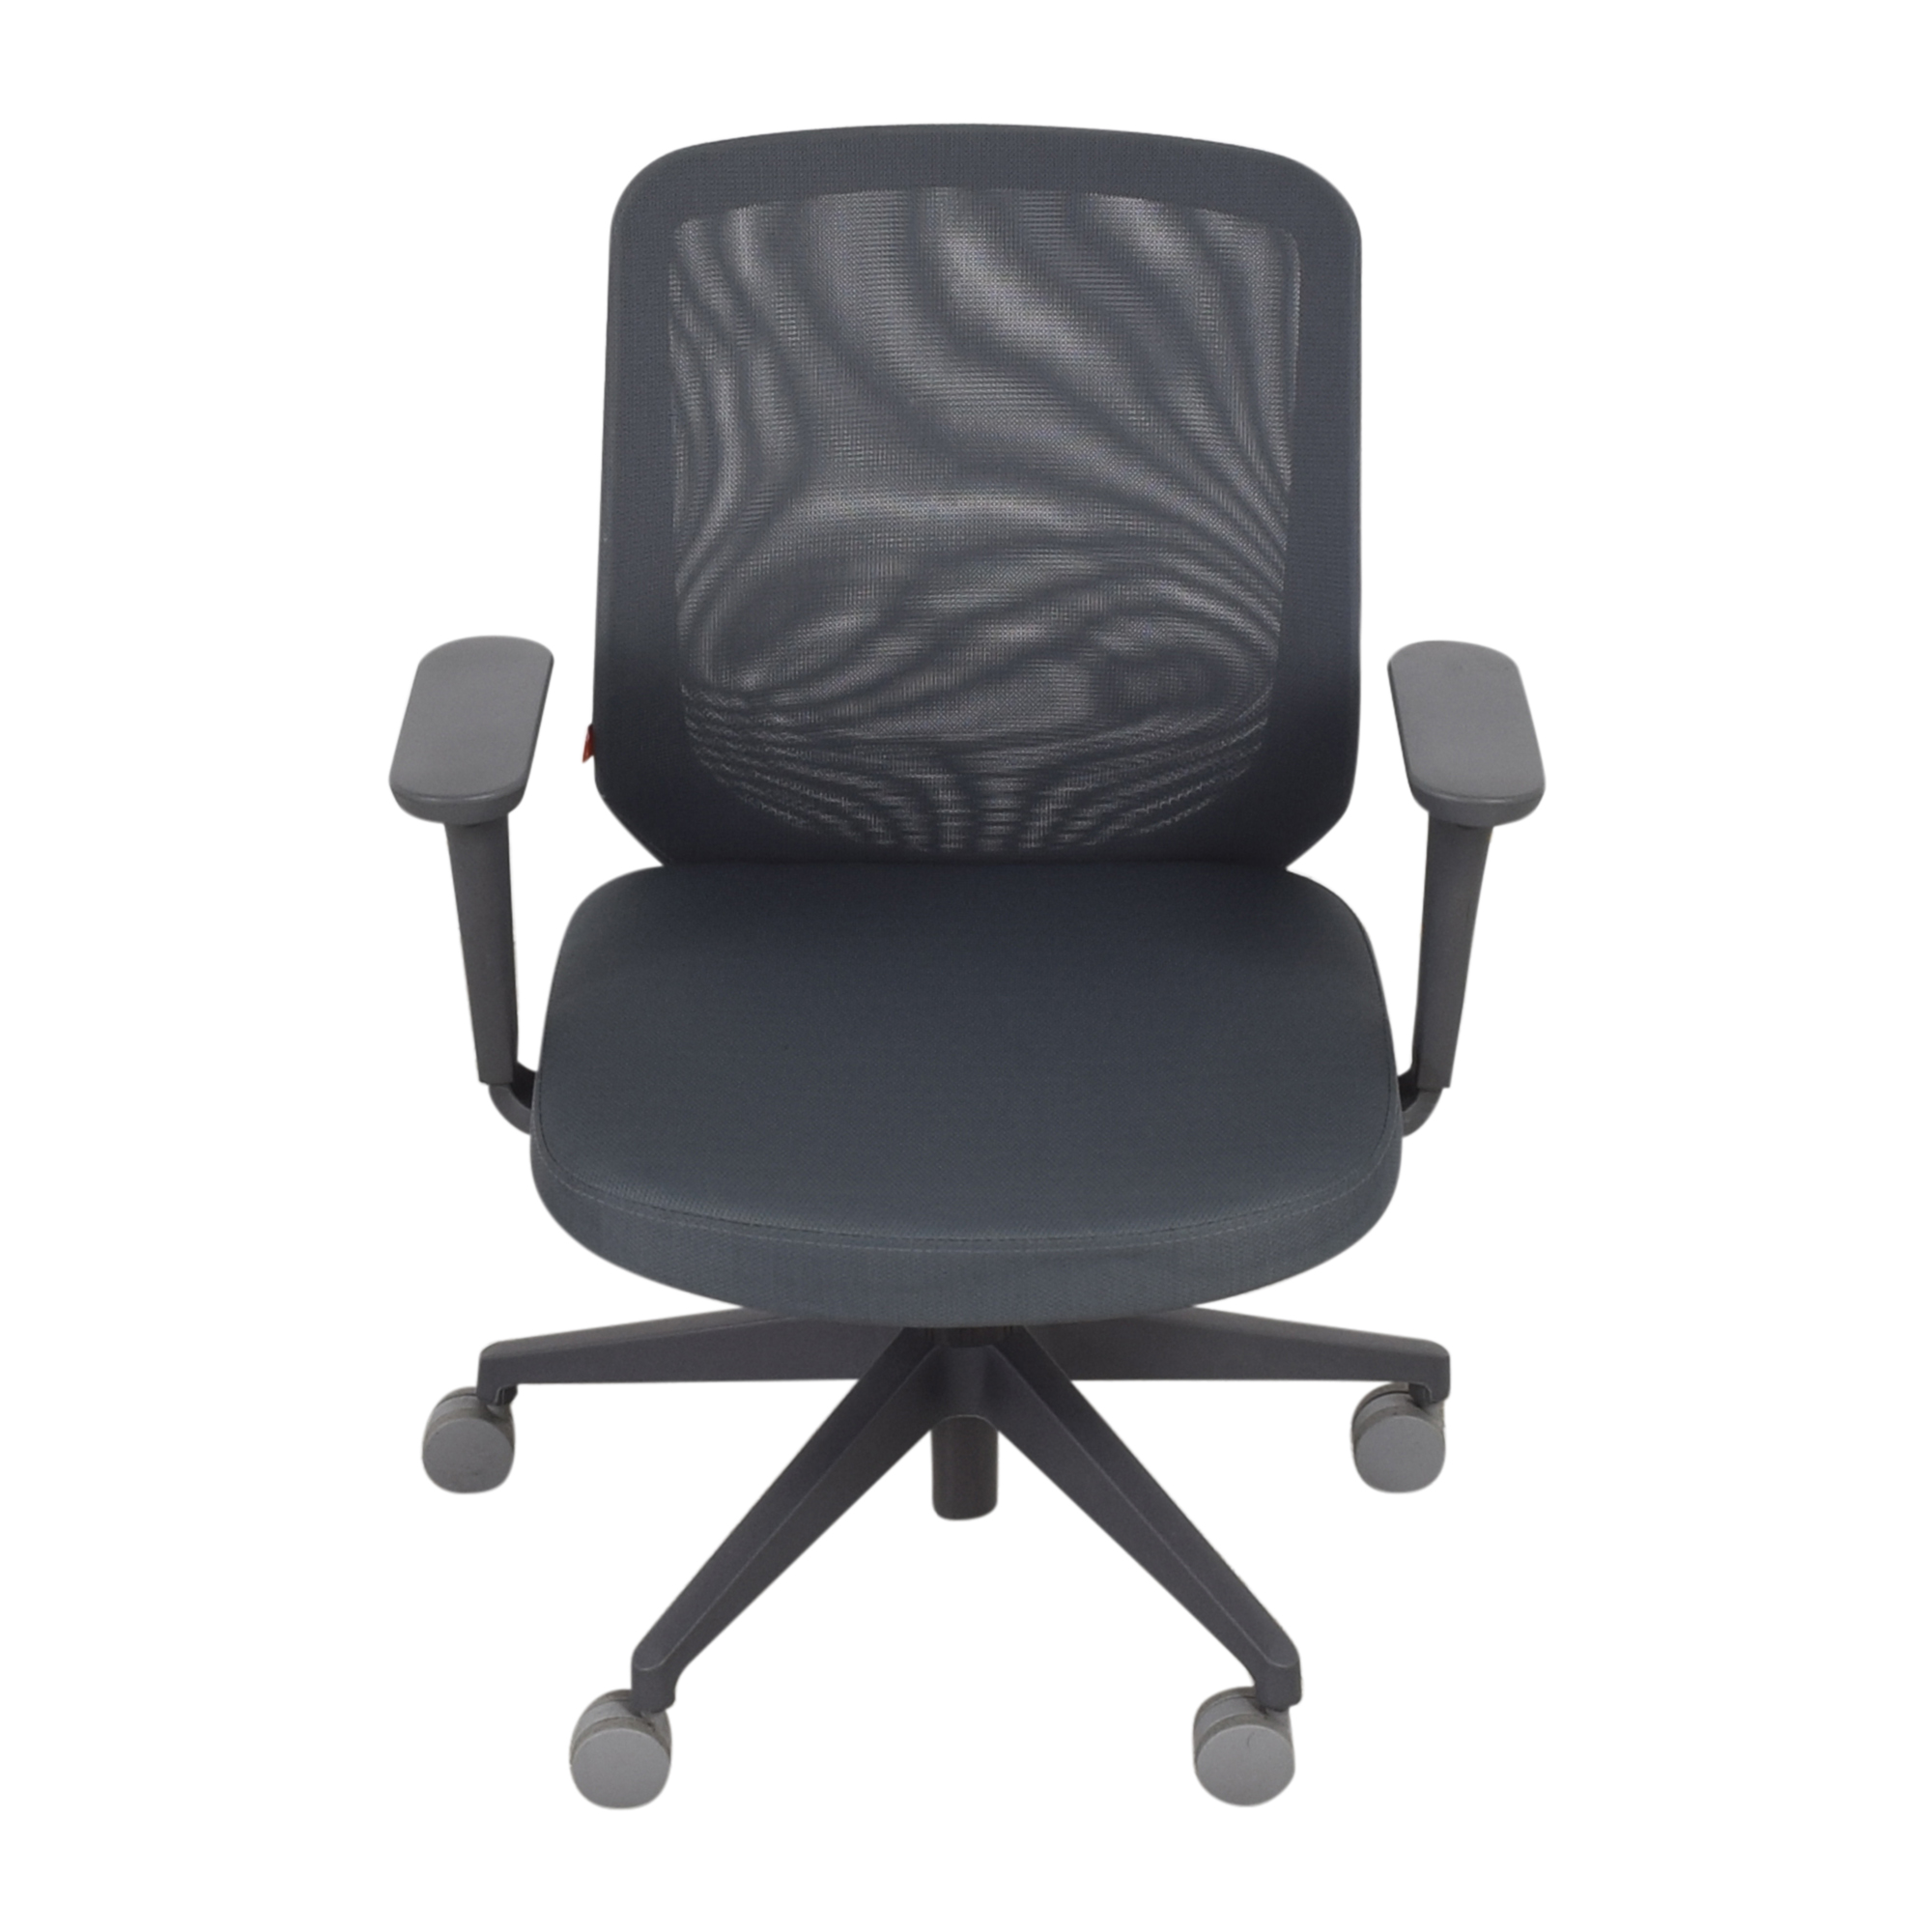 Poppin Poppin Max Task Chair second hand